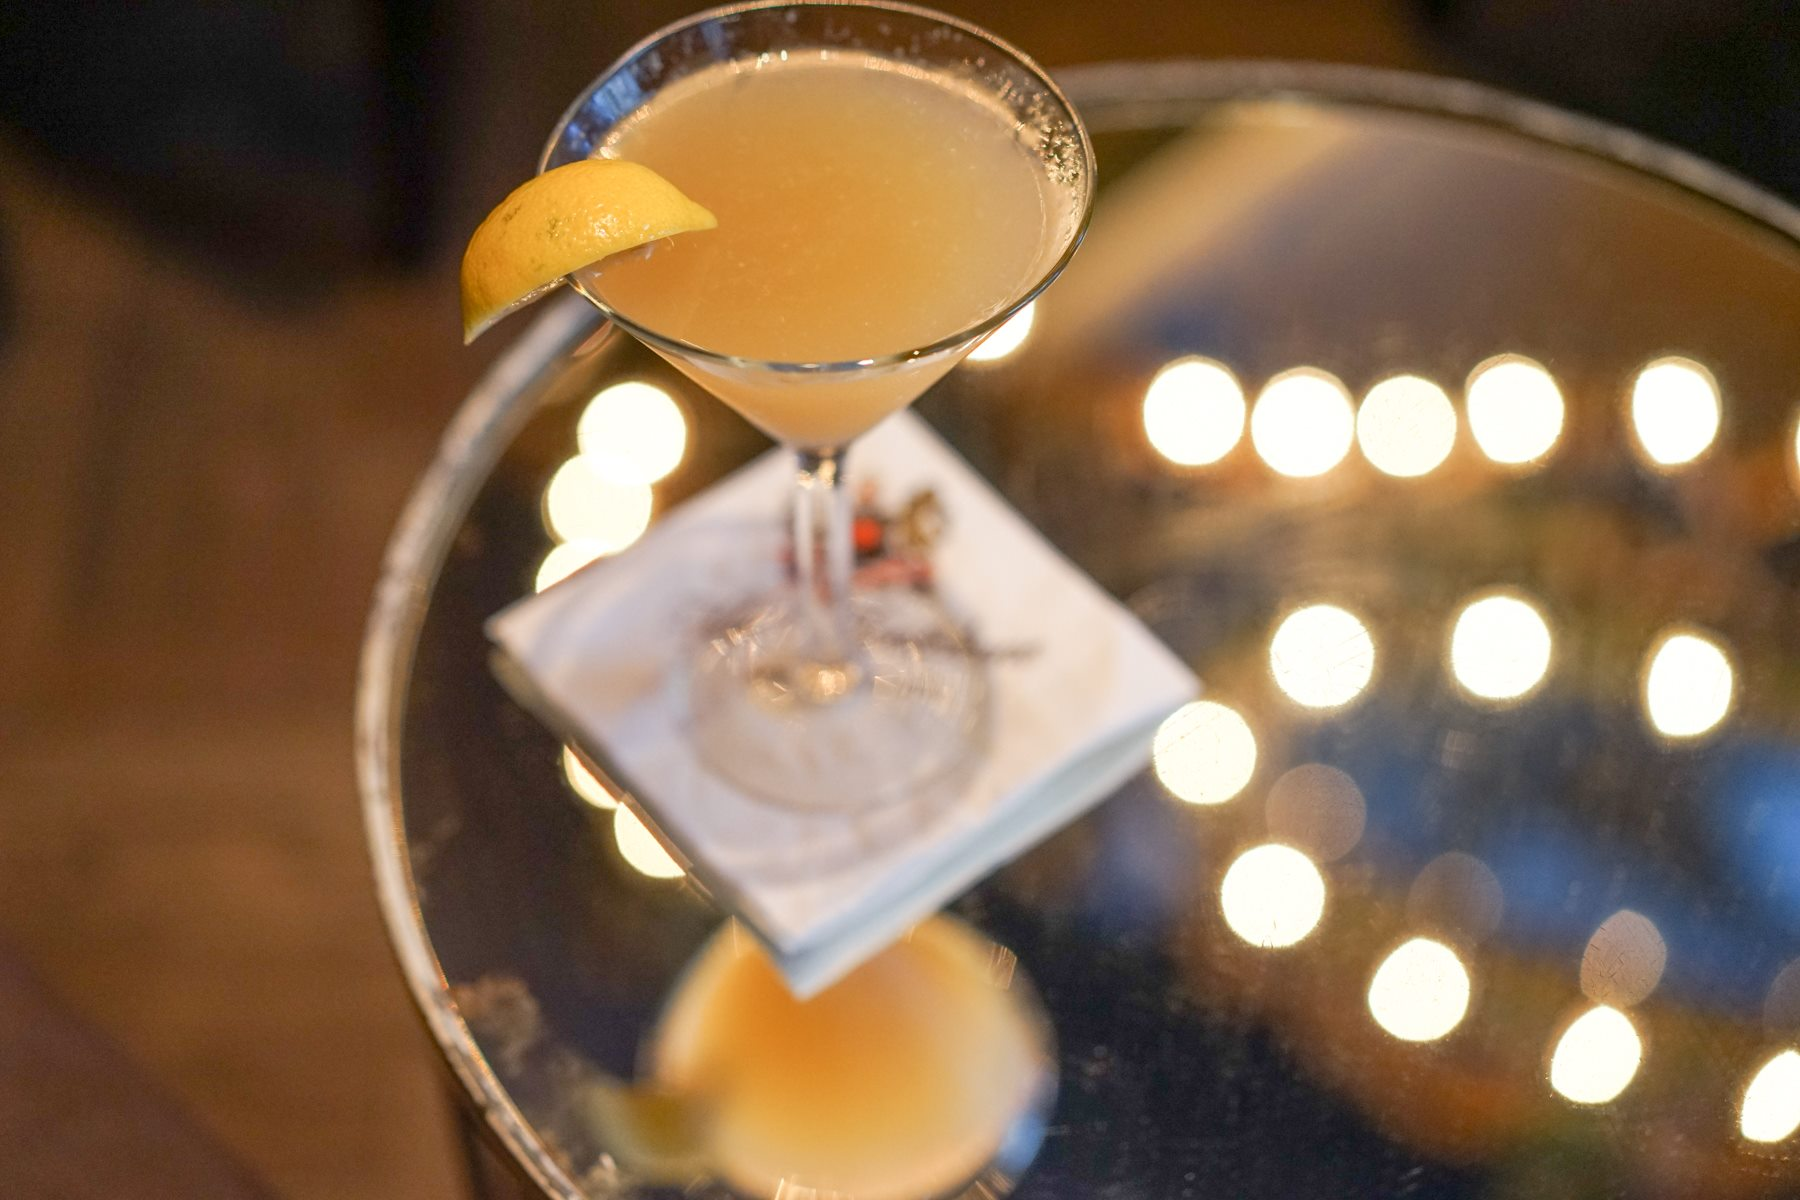 Enjoy a cocktail at The Carousel Bar and revel in the spirit of Tennessee Williams